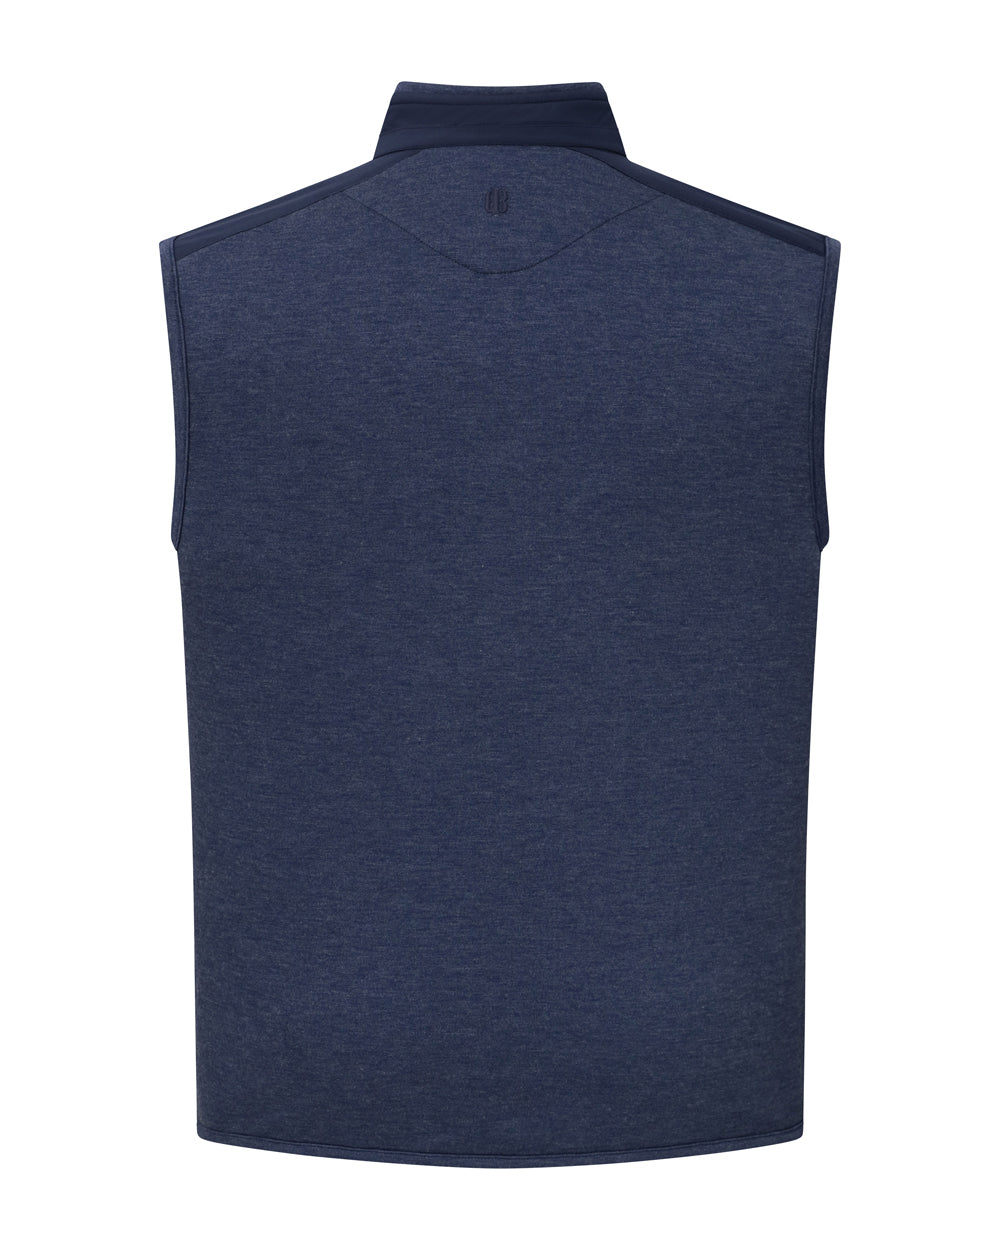 NLU + H&B Puff Vest | Navy (S, 2XL left)